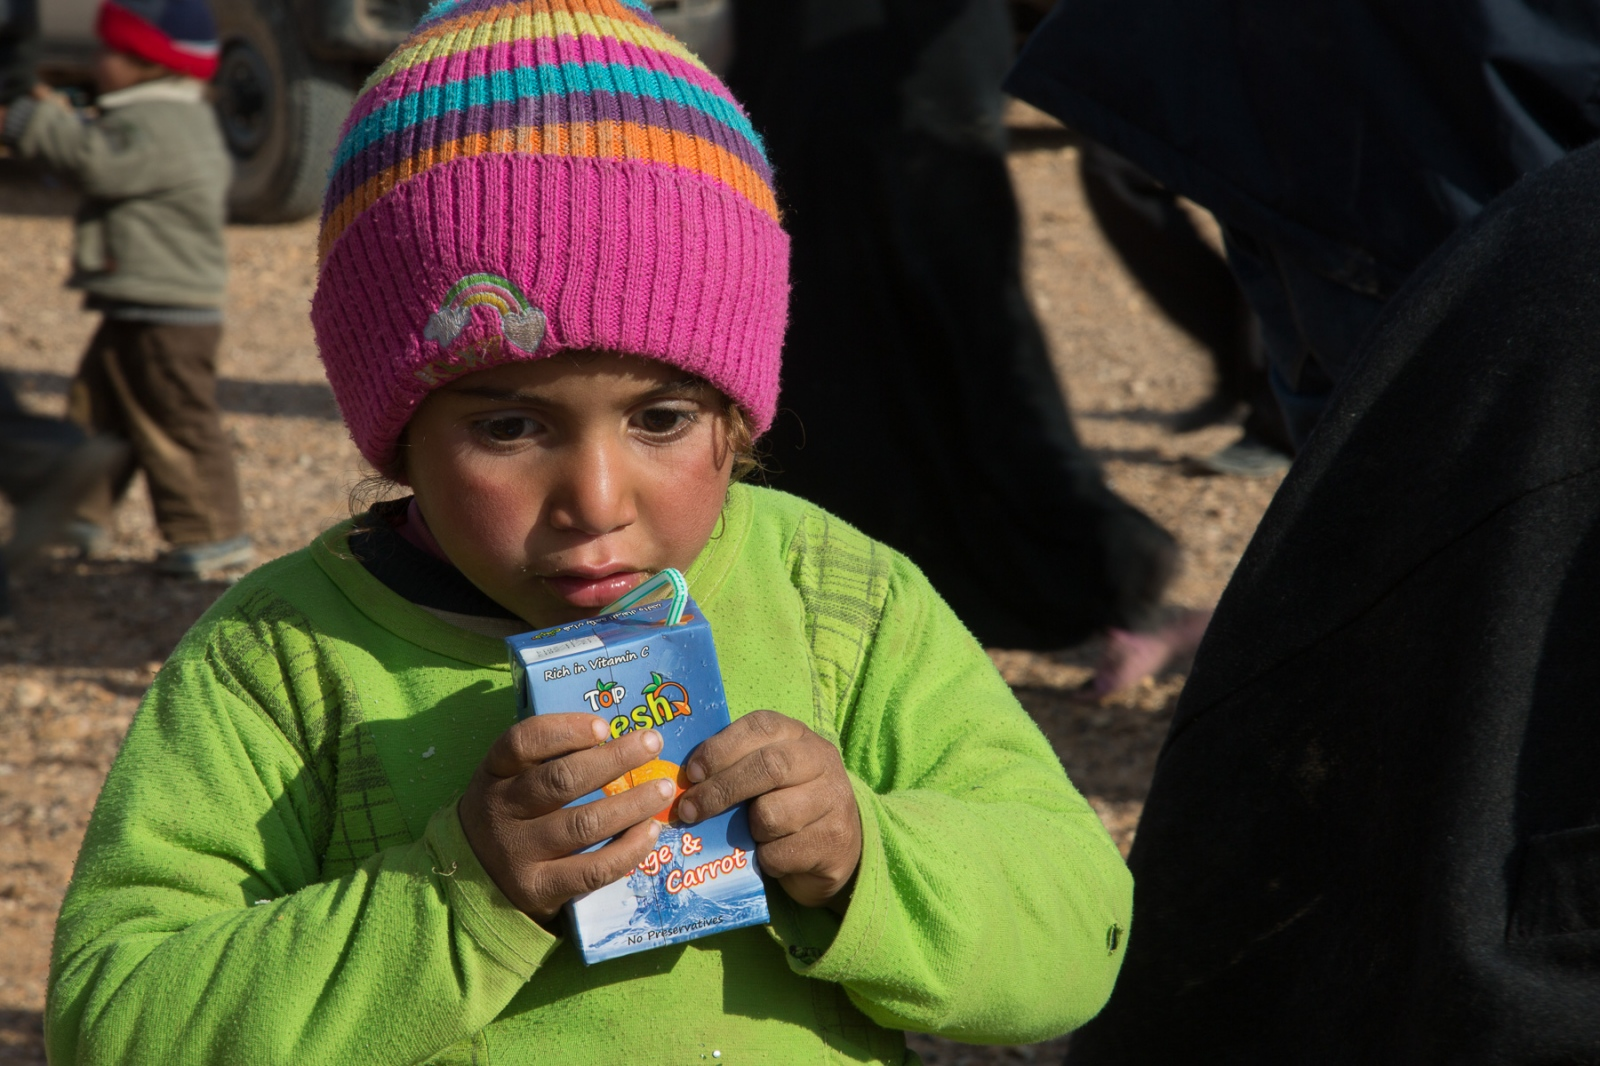 The majority of the refugees coming across the Syrian border into Jordan are children.